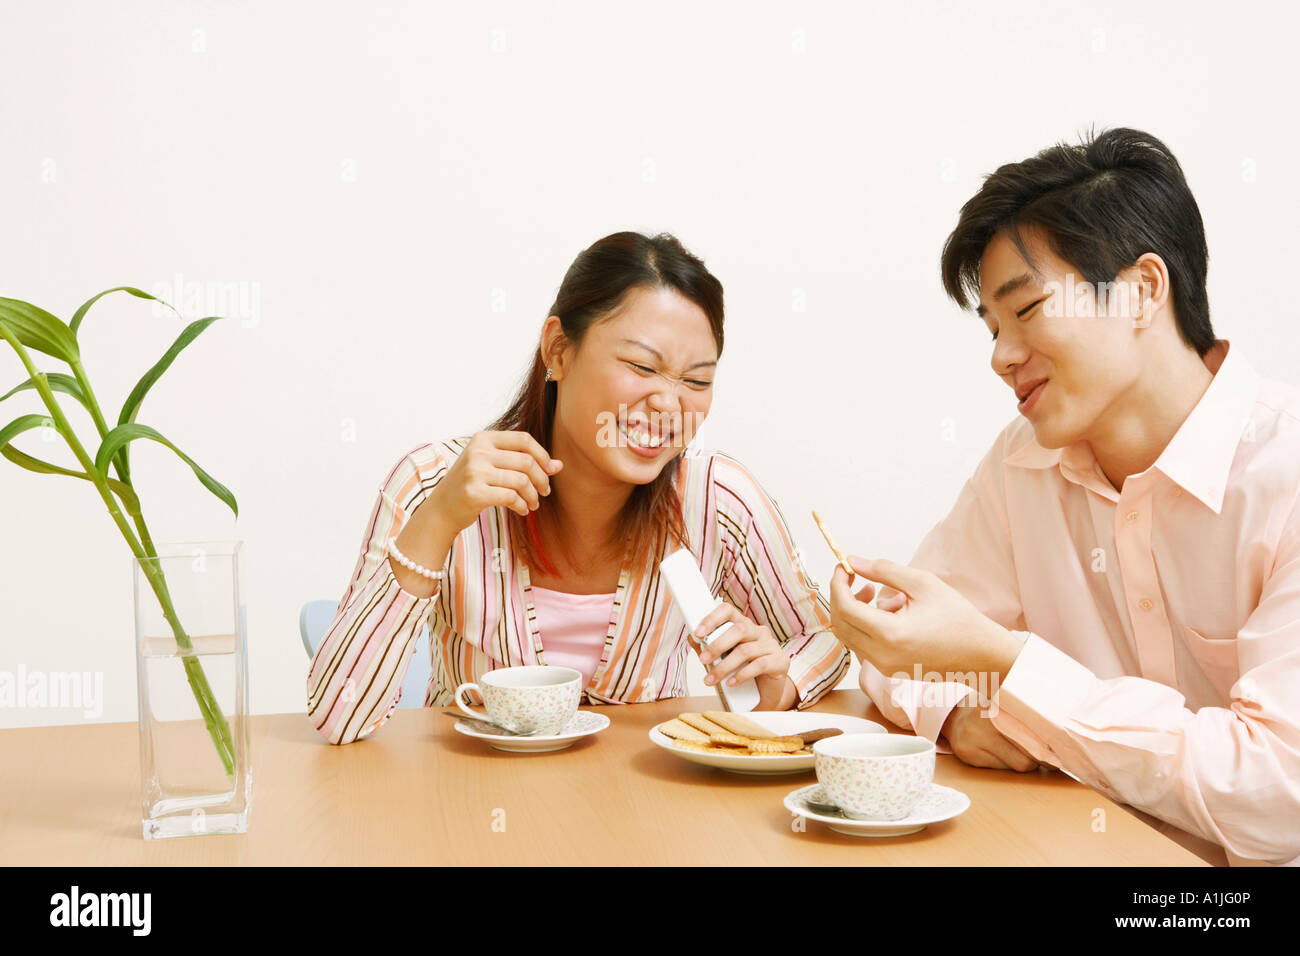 Close-up of a young couple looking at a cookie and smiling - Stock Image